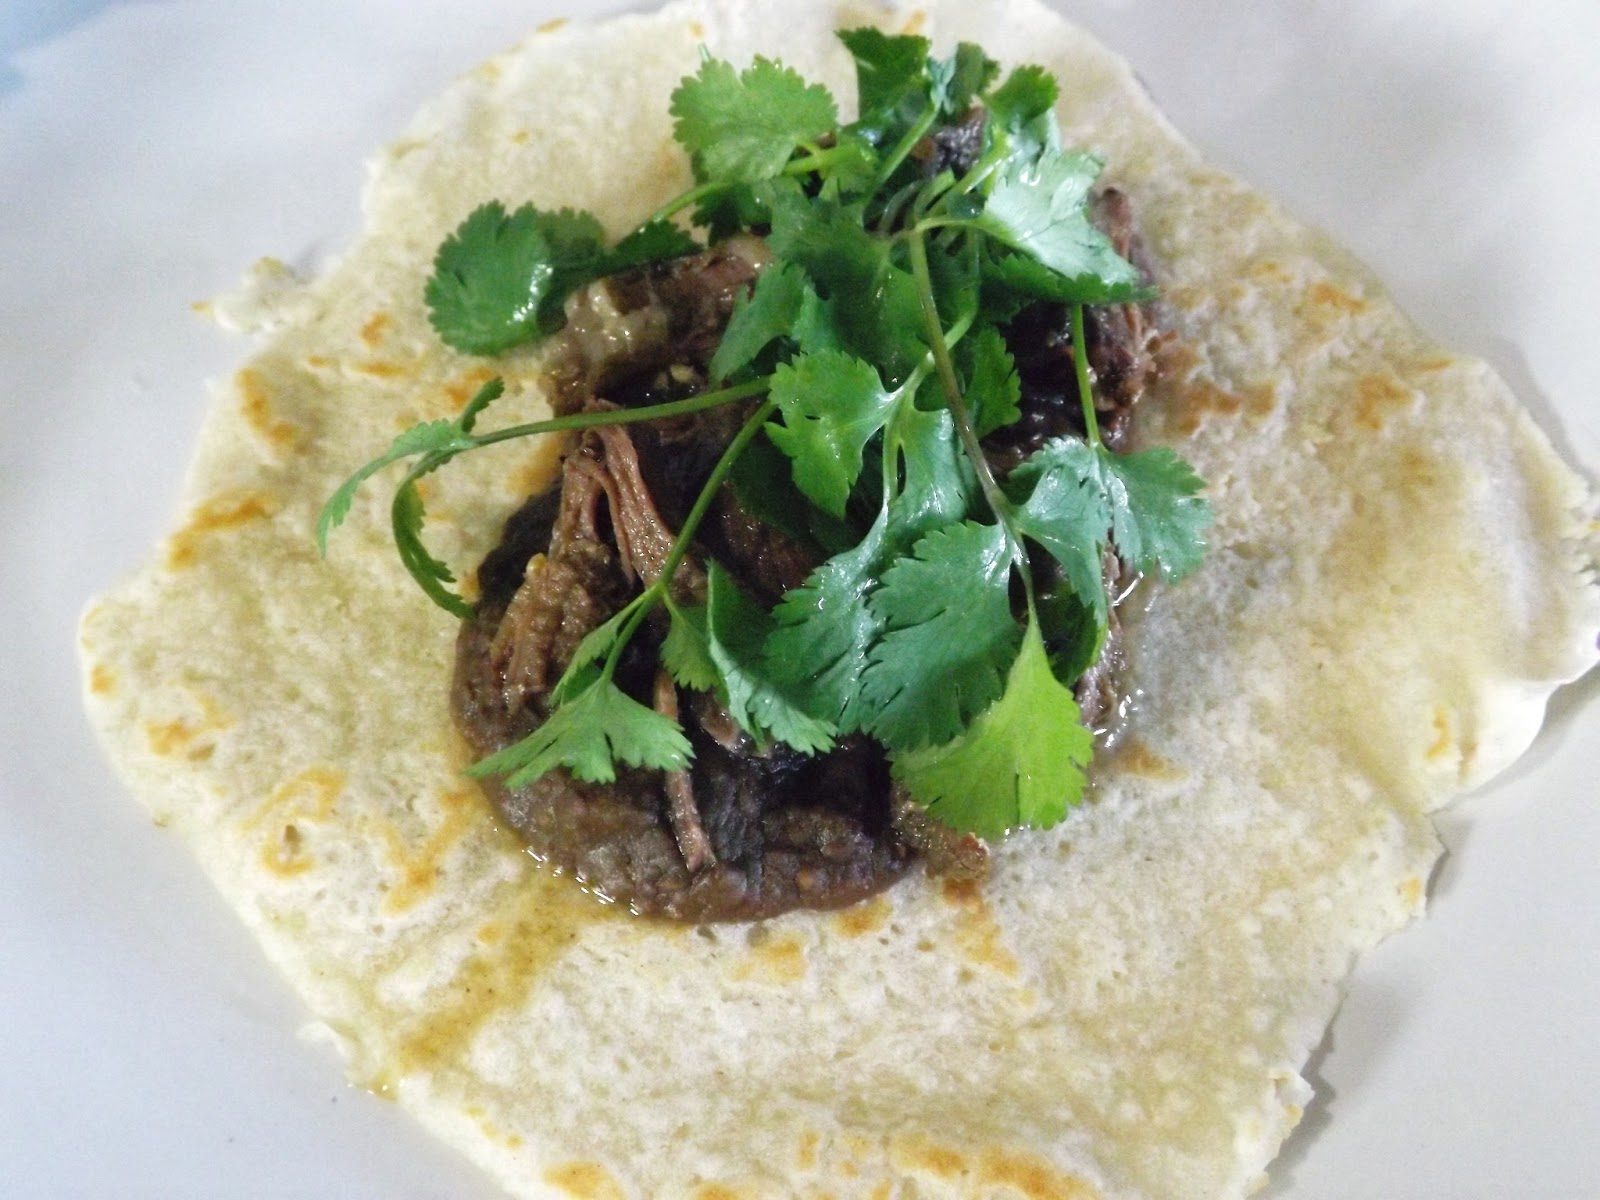 Epic Shredded Beef Soft Tacos, gluten free